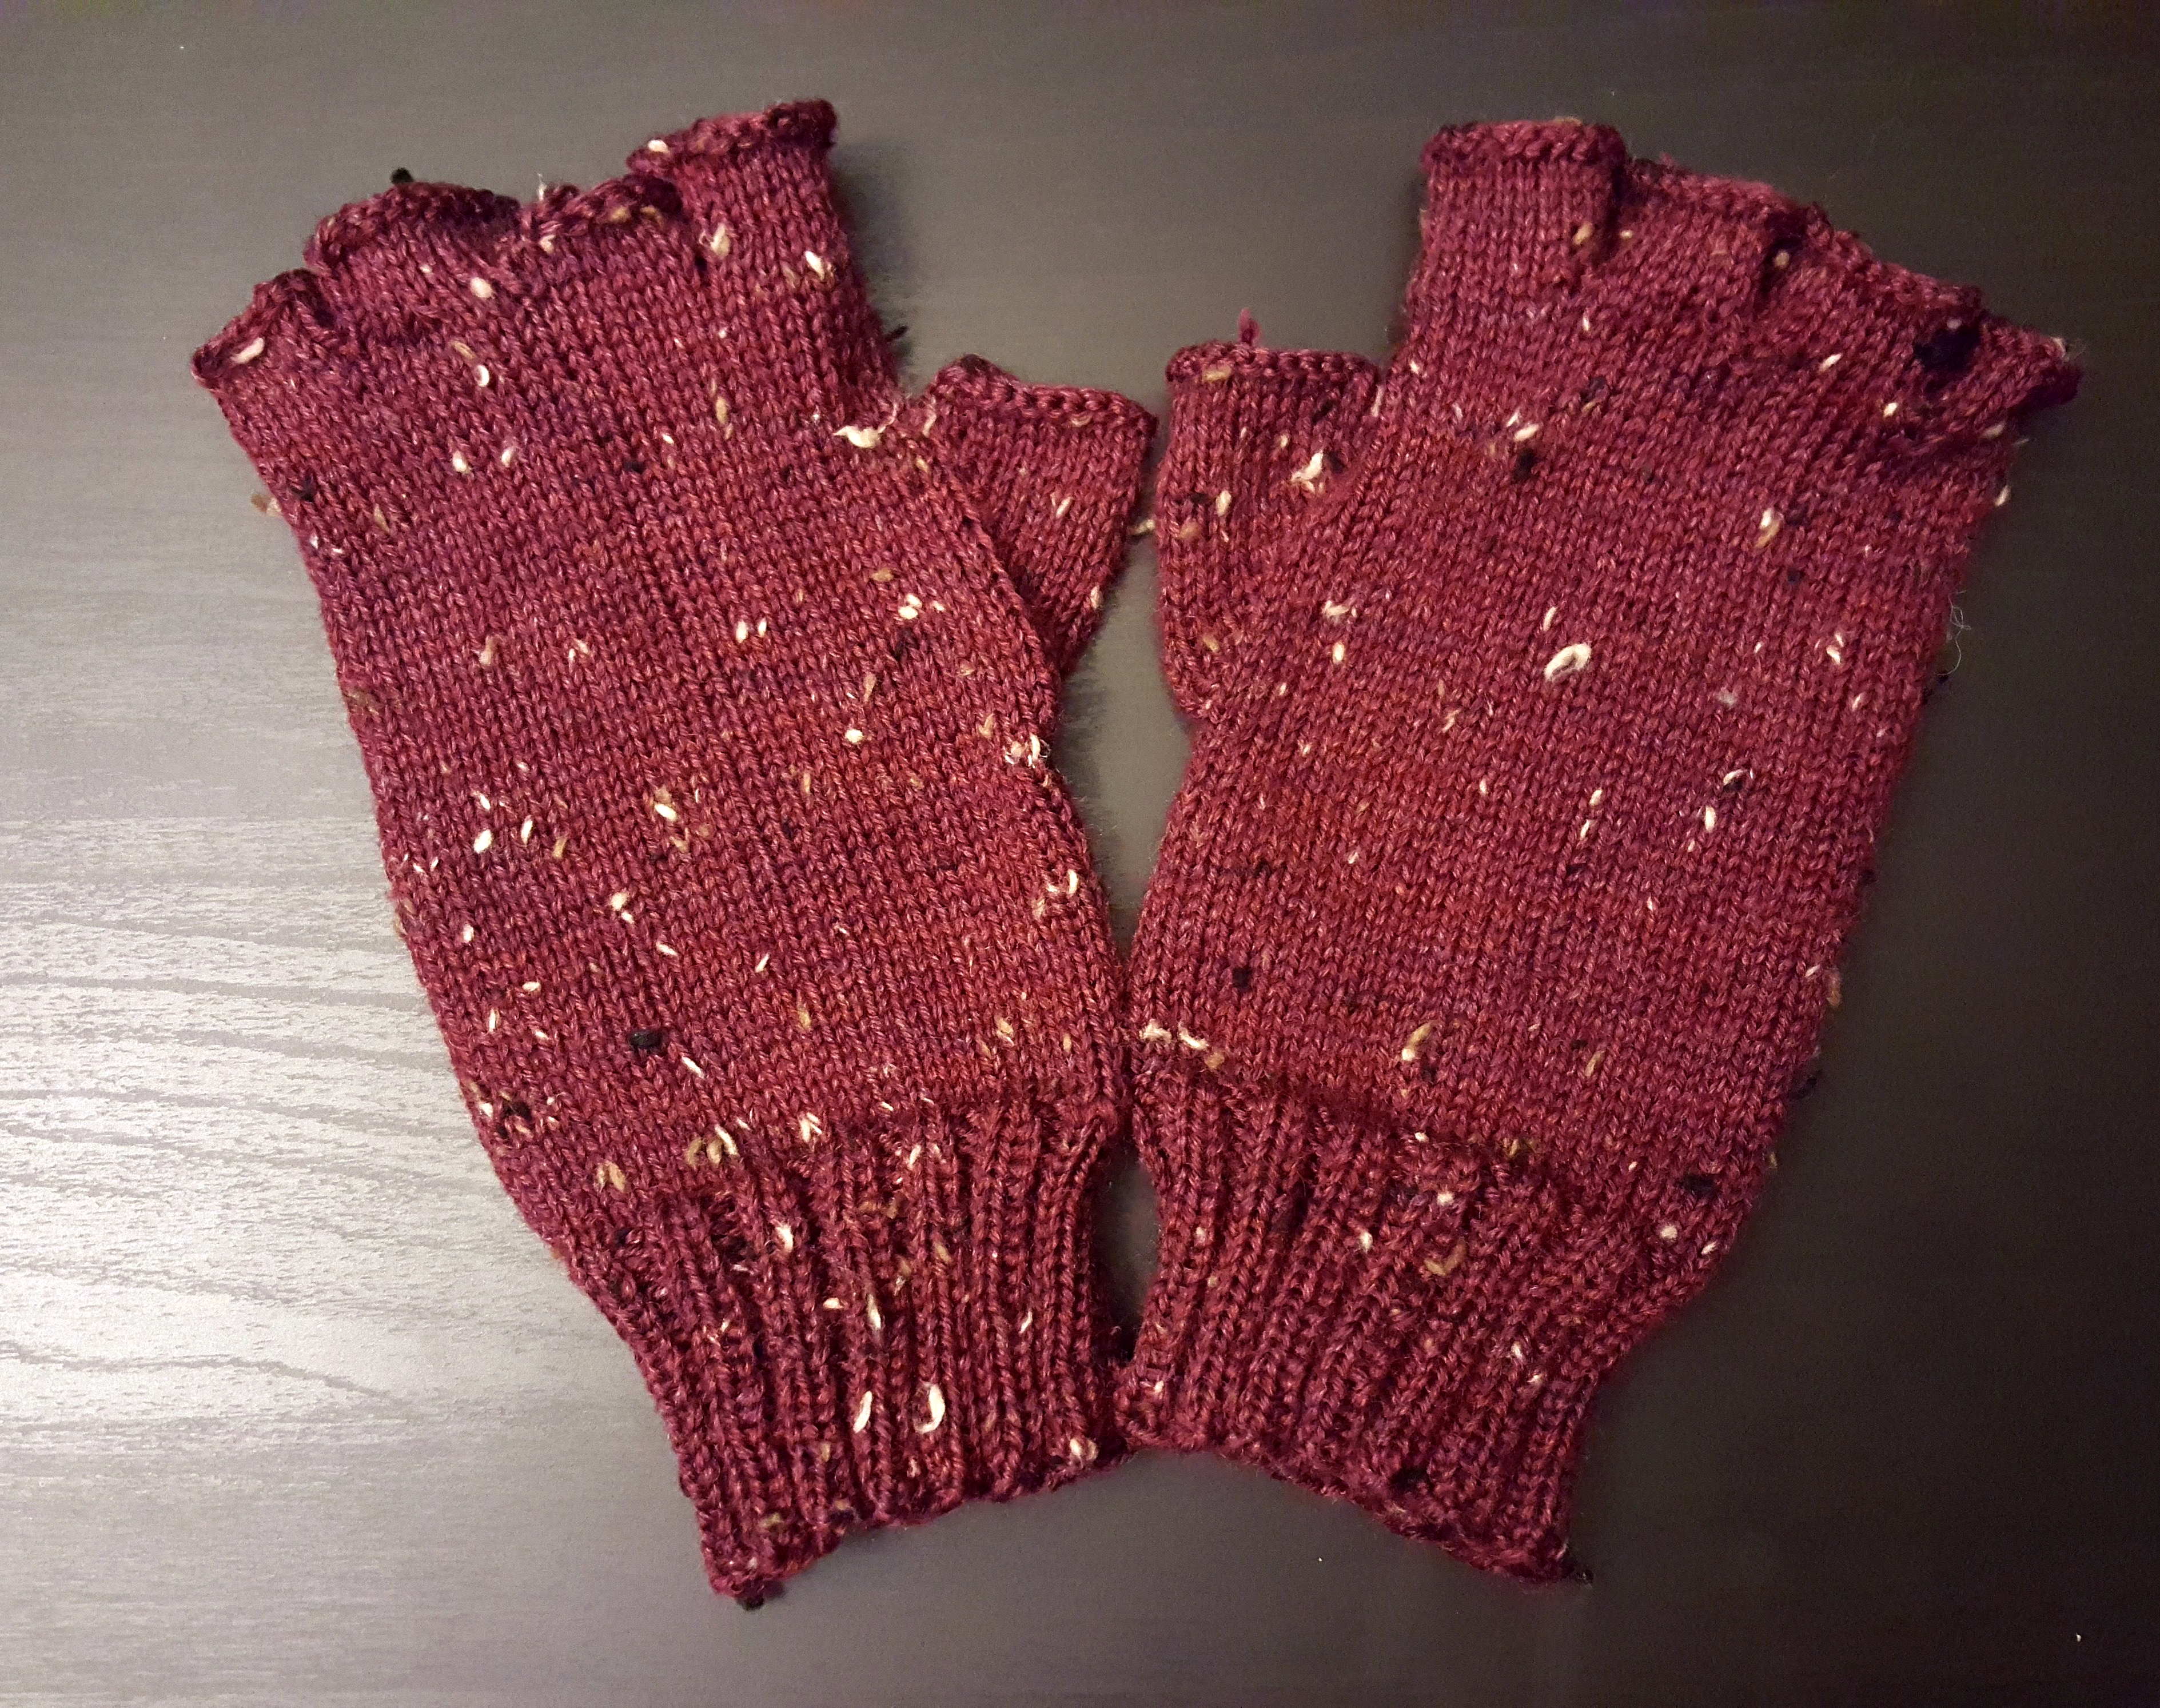 Red-Purple tweed fingerless gloves on a black surface.